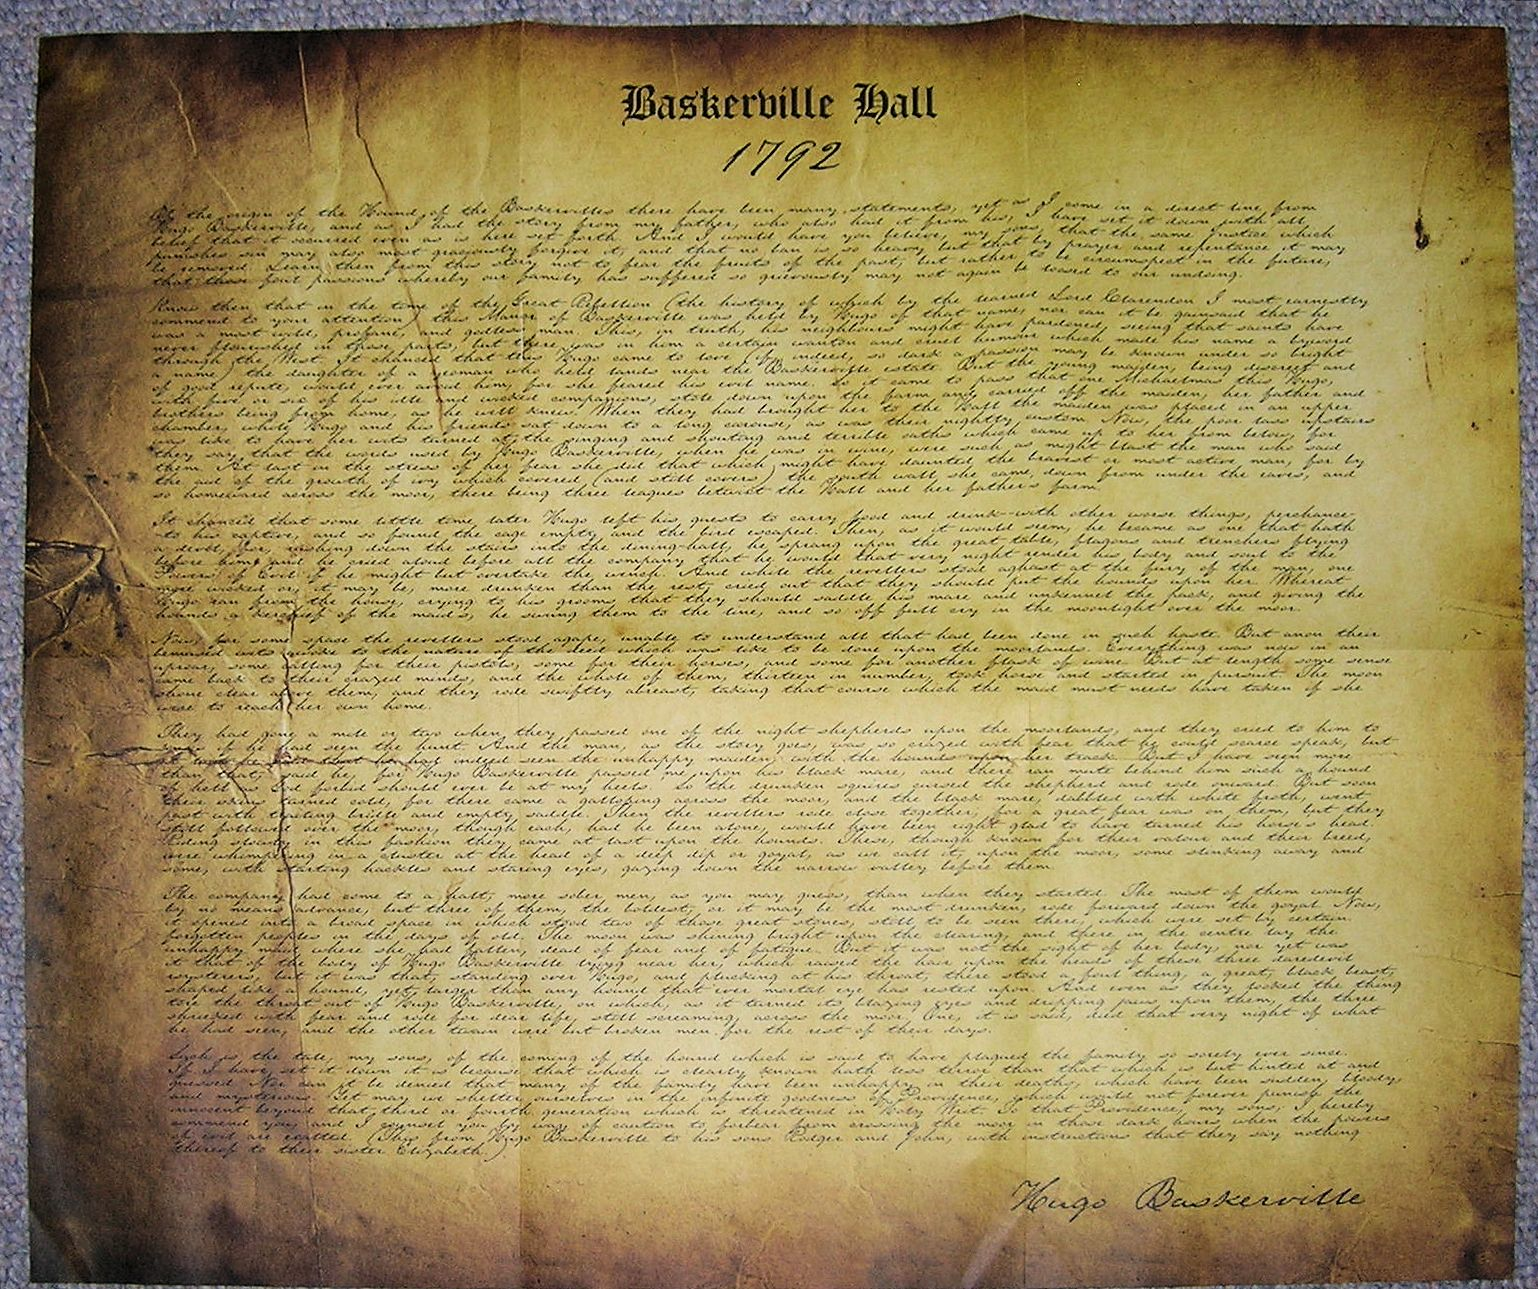 I looked over his shoulder at the yellow paper and the faded script. At the head was written: 'Baskerville Hall', and below, in large, scrawling figures: '1742'. - WTB HOUND Evidence Box